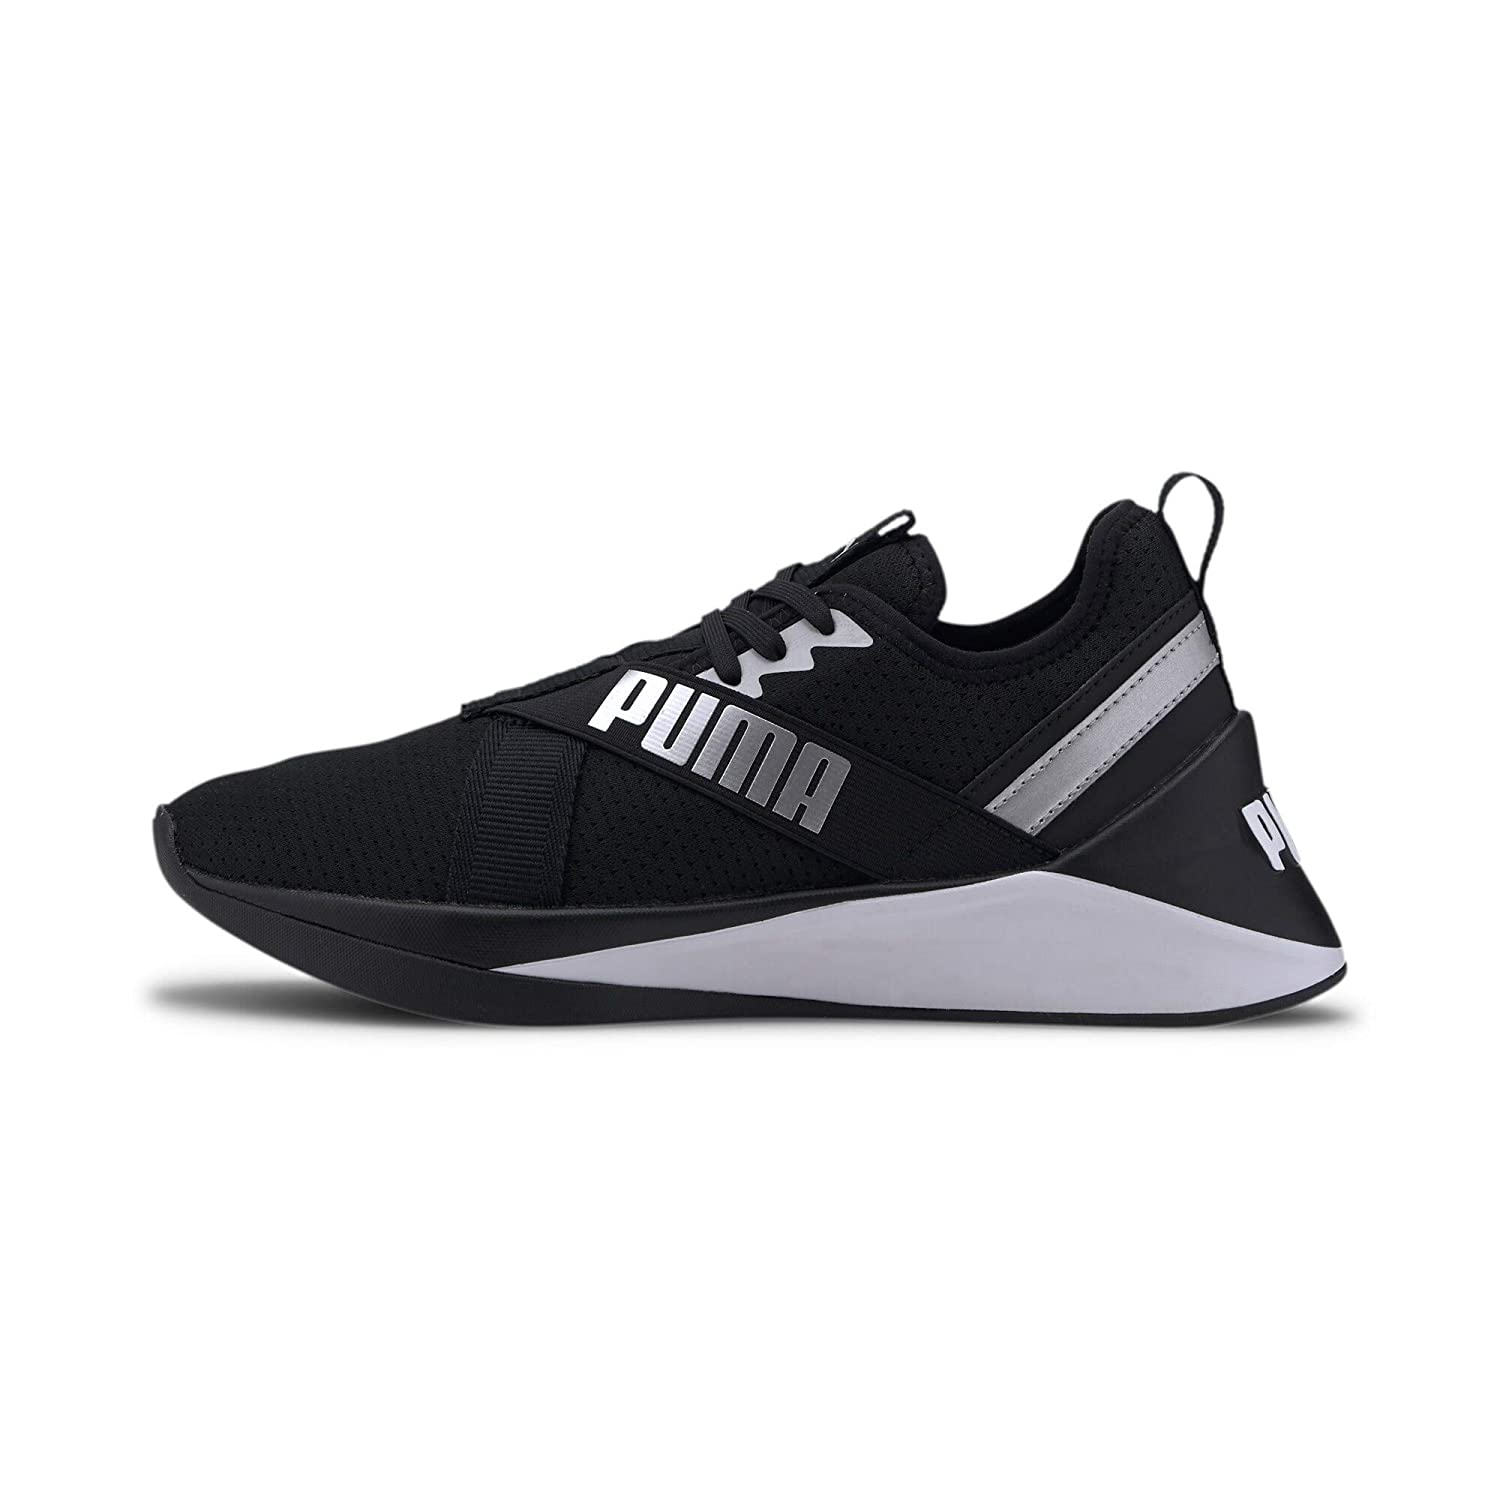 Jaab Xt Pwr Wn S Track and Field Shoe